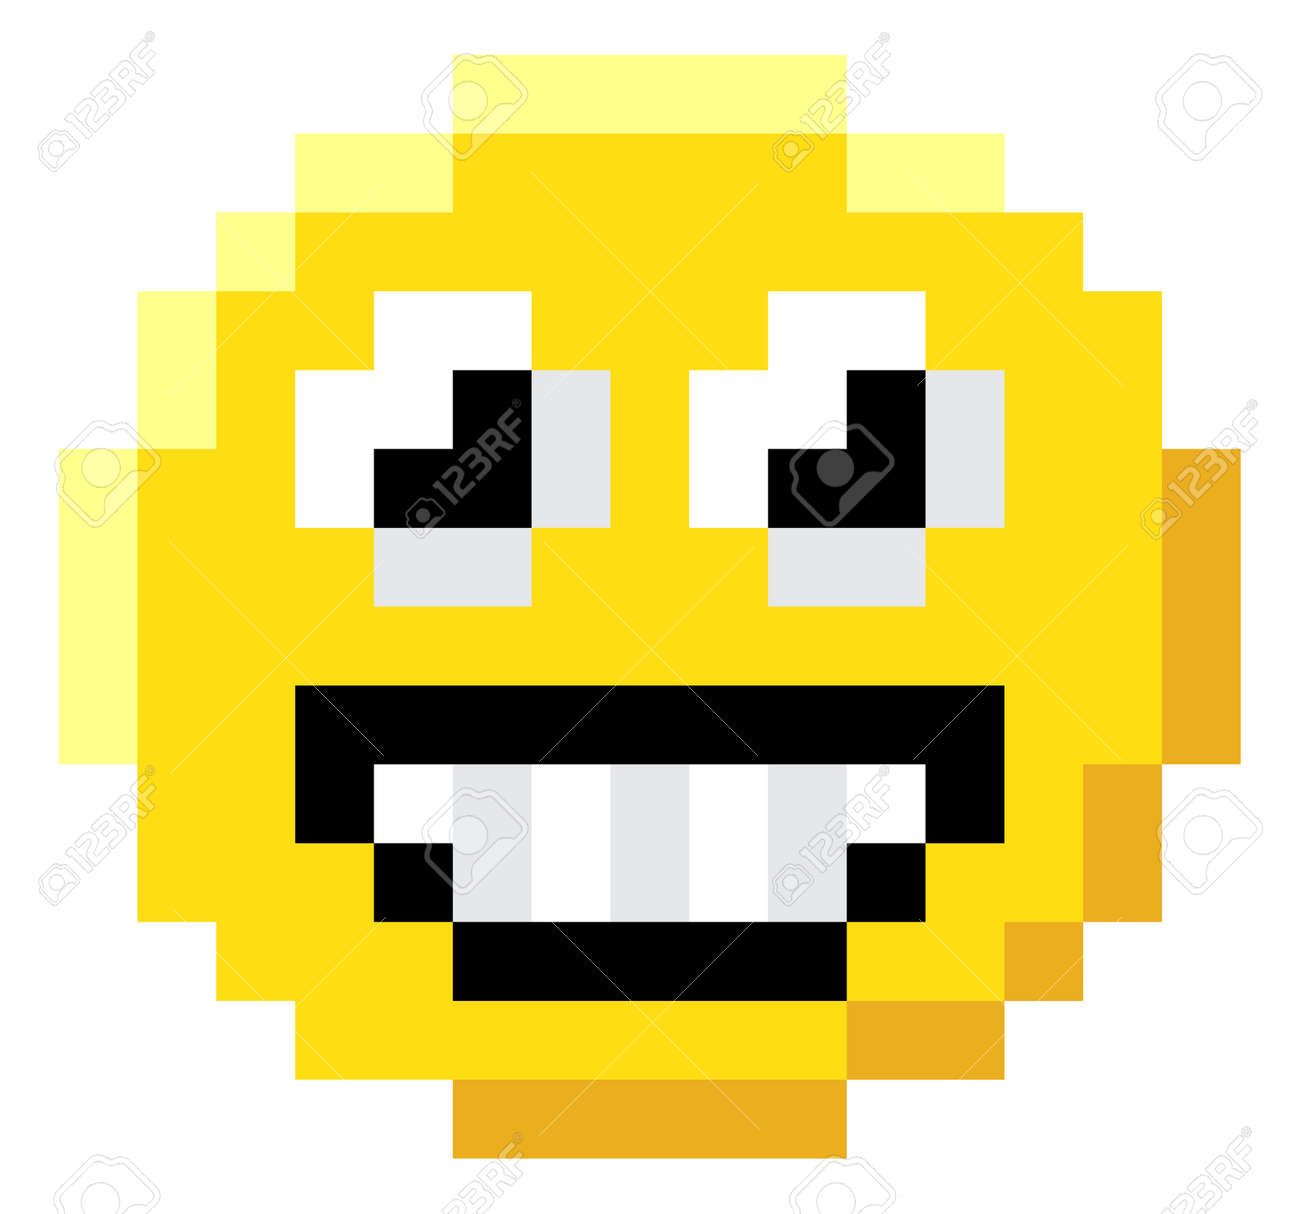 An Emoji Emoticon Face Icon In A Pixel Art 8 Bit Video Game Style